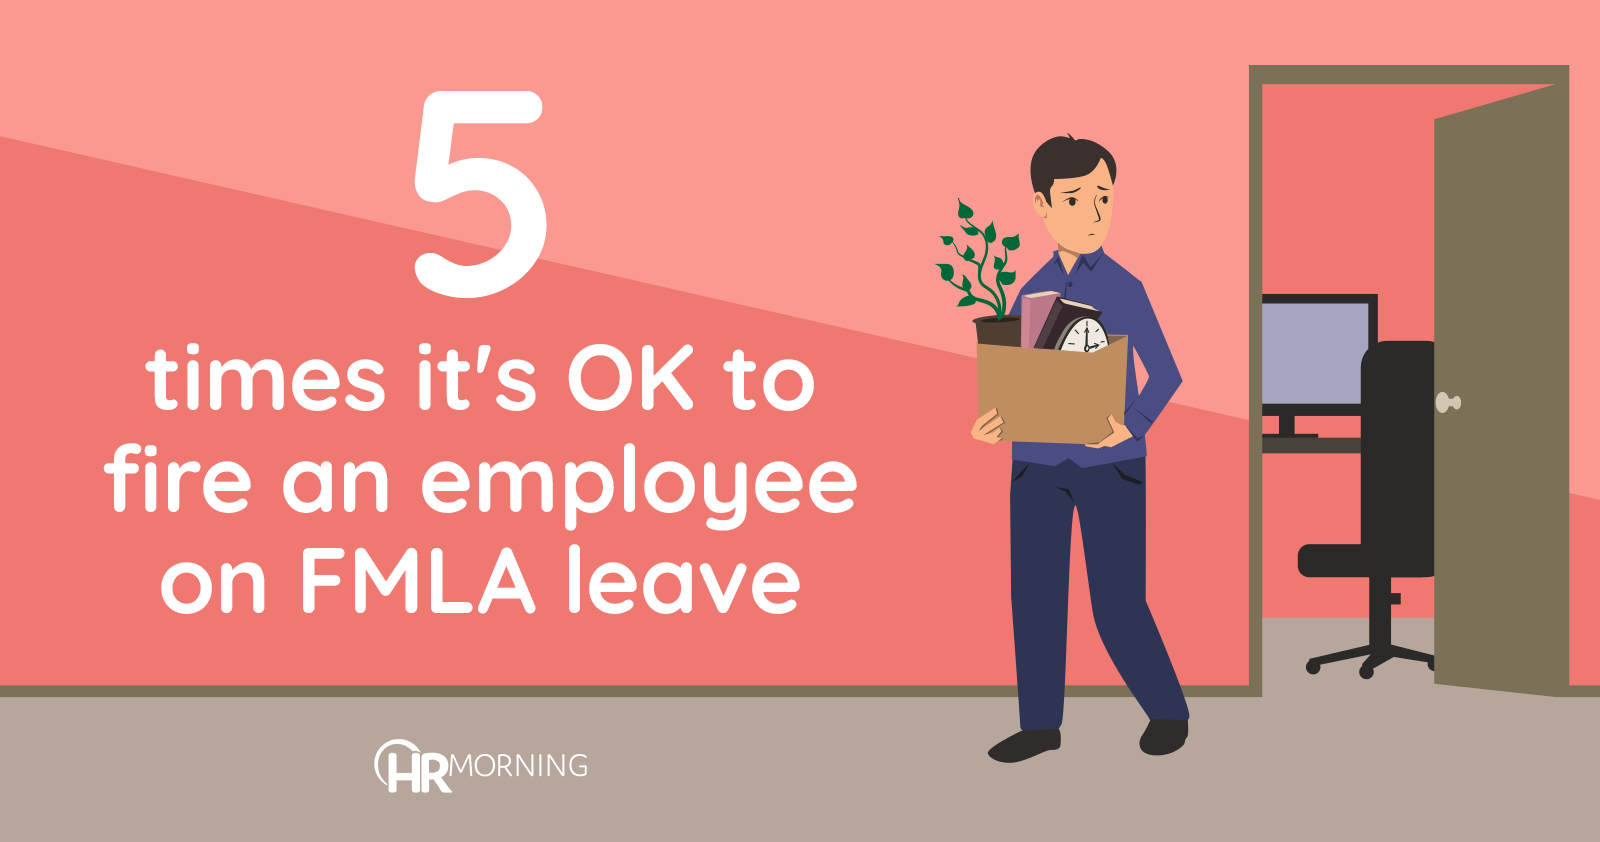 5 times it's ok to fire an employee on FMLA leave